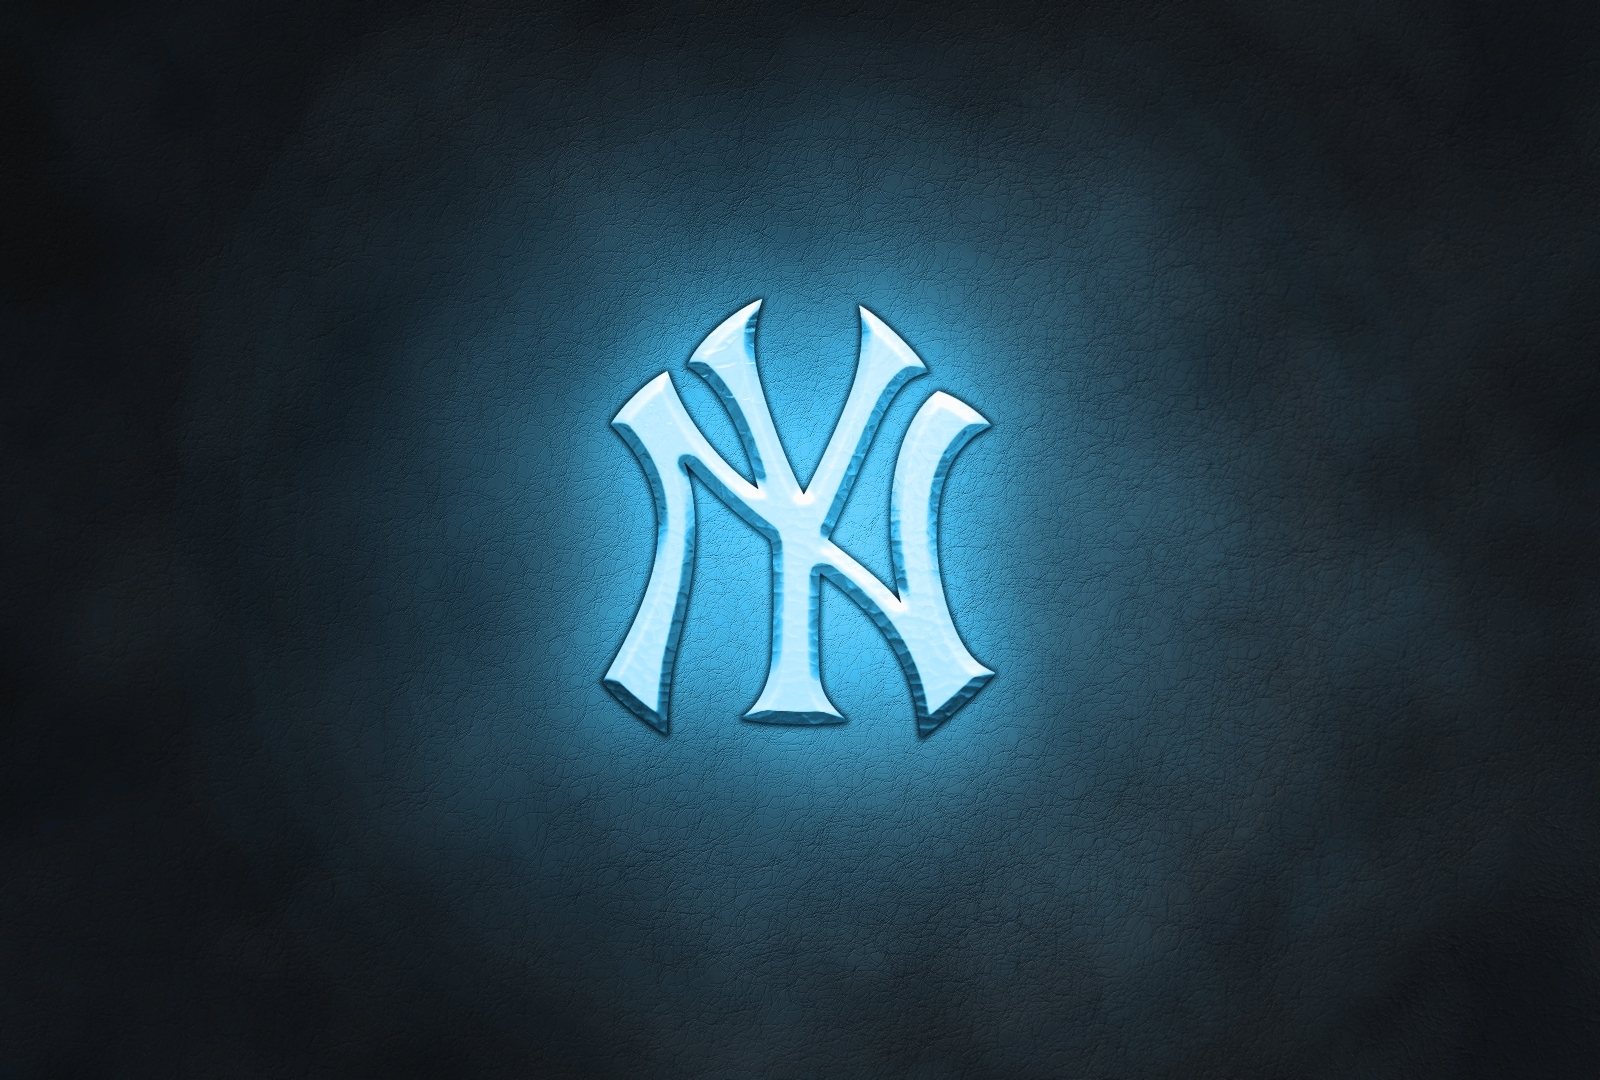 10 Latest 1080p Hd Space Wallpapers Full Hd 1080p For Pc: 10 Latest New York Yankees Desktop Wallpaper FULL HD 1080p